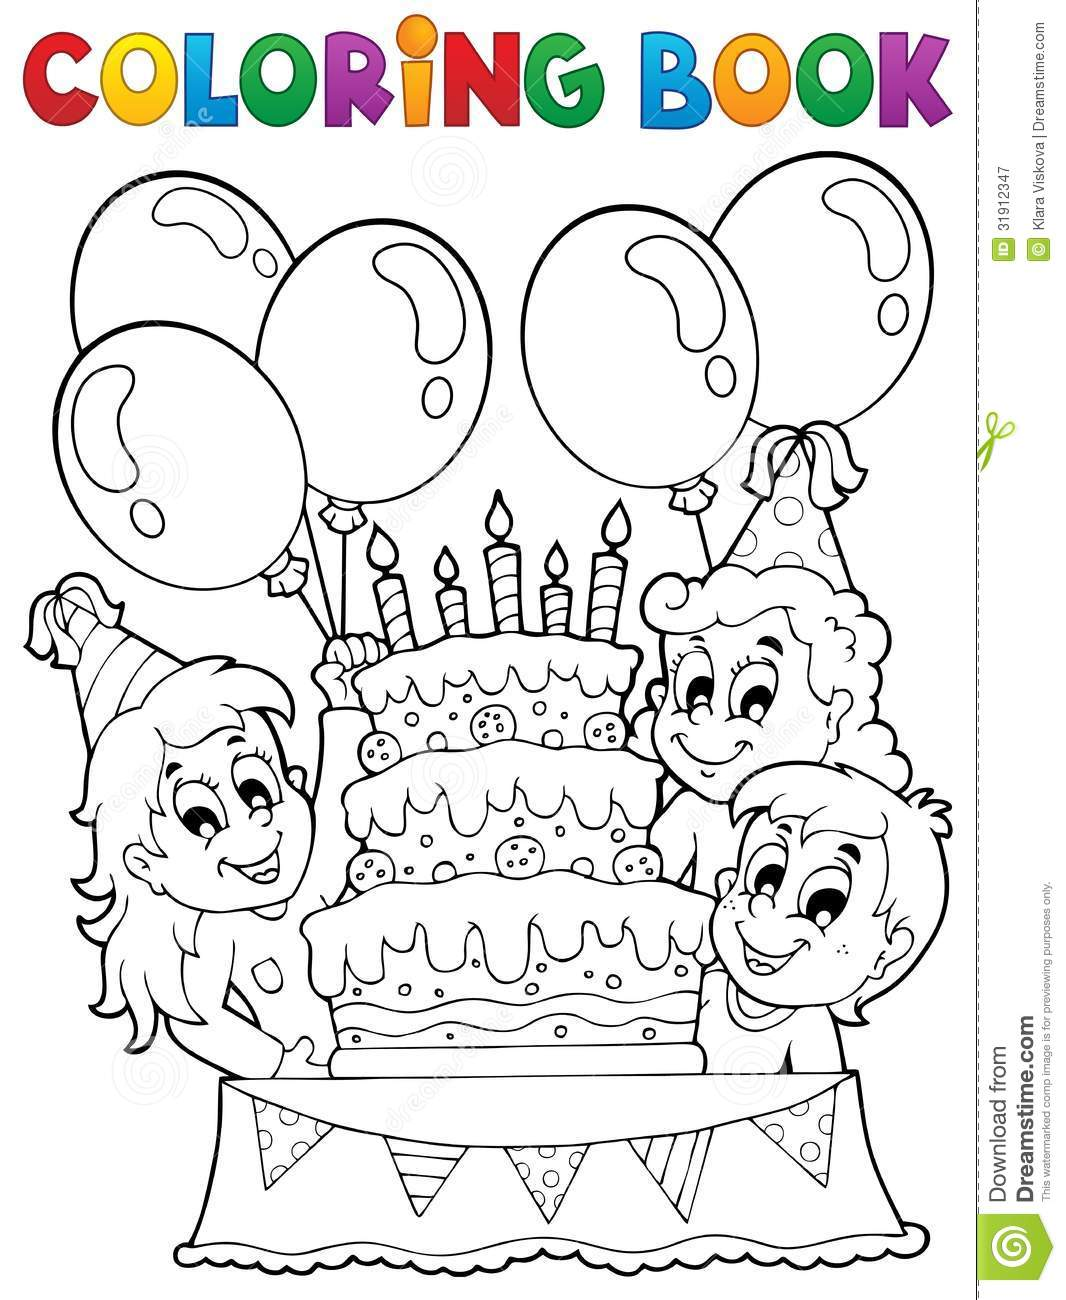 coloring book kids party theme 2 royalty free stock photography - Kids Free Drawing